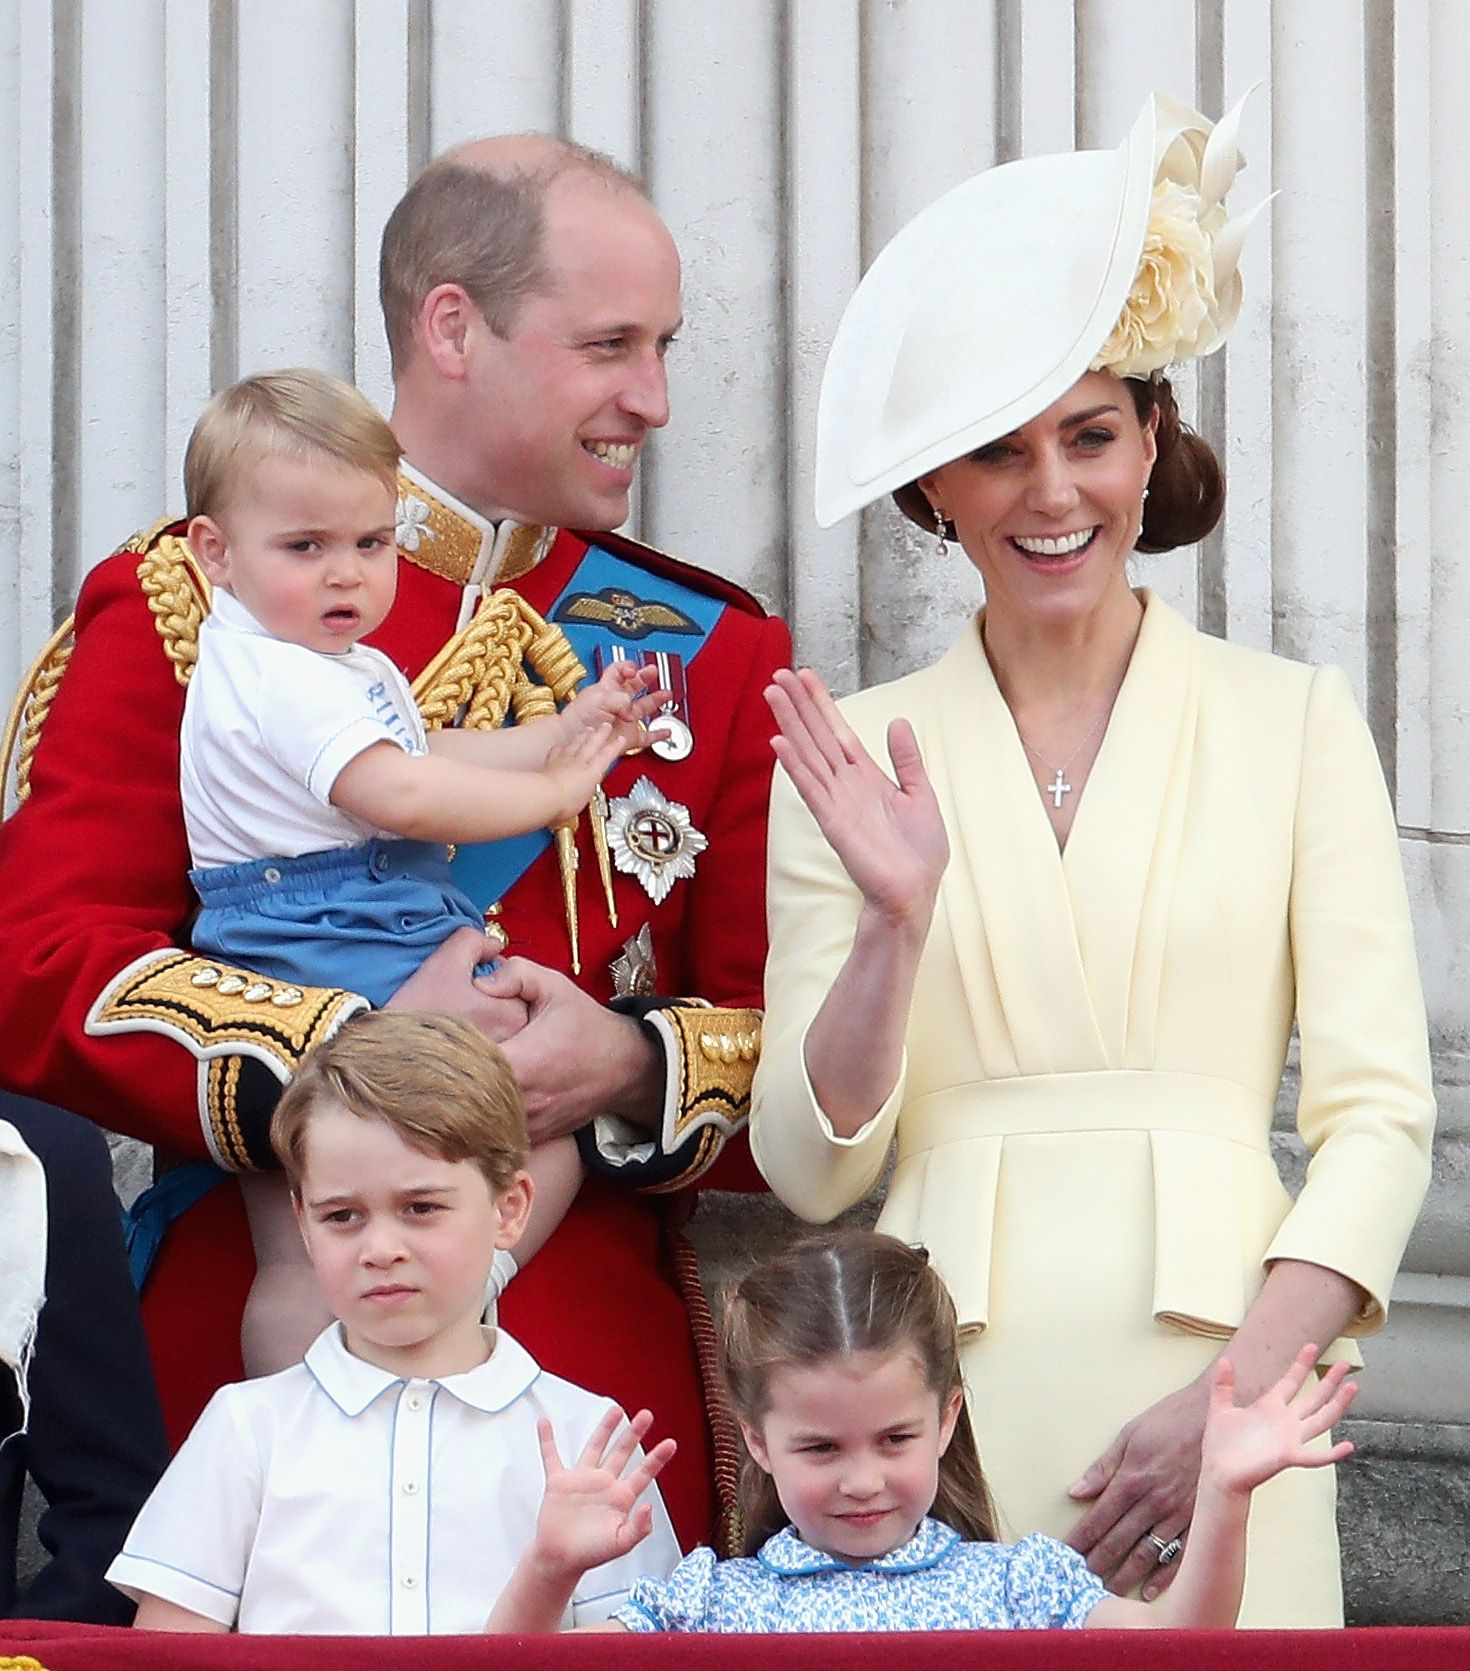 Prince William, Kate Middleton, Prince Louis, Prince George, and Princess Charlotte during Trooping The Colour on June 8, 2019 in London, England. | Photo: Getty Images.